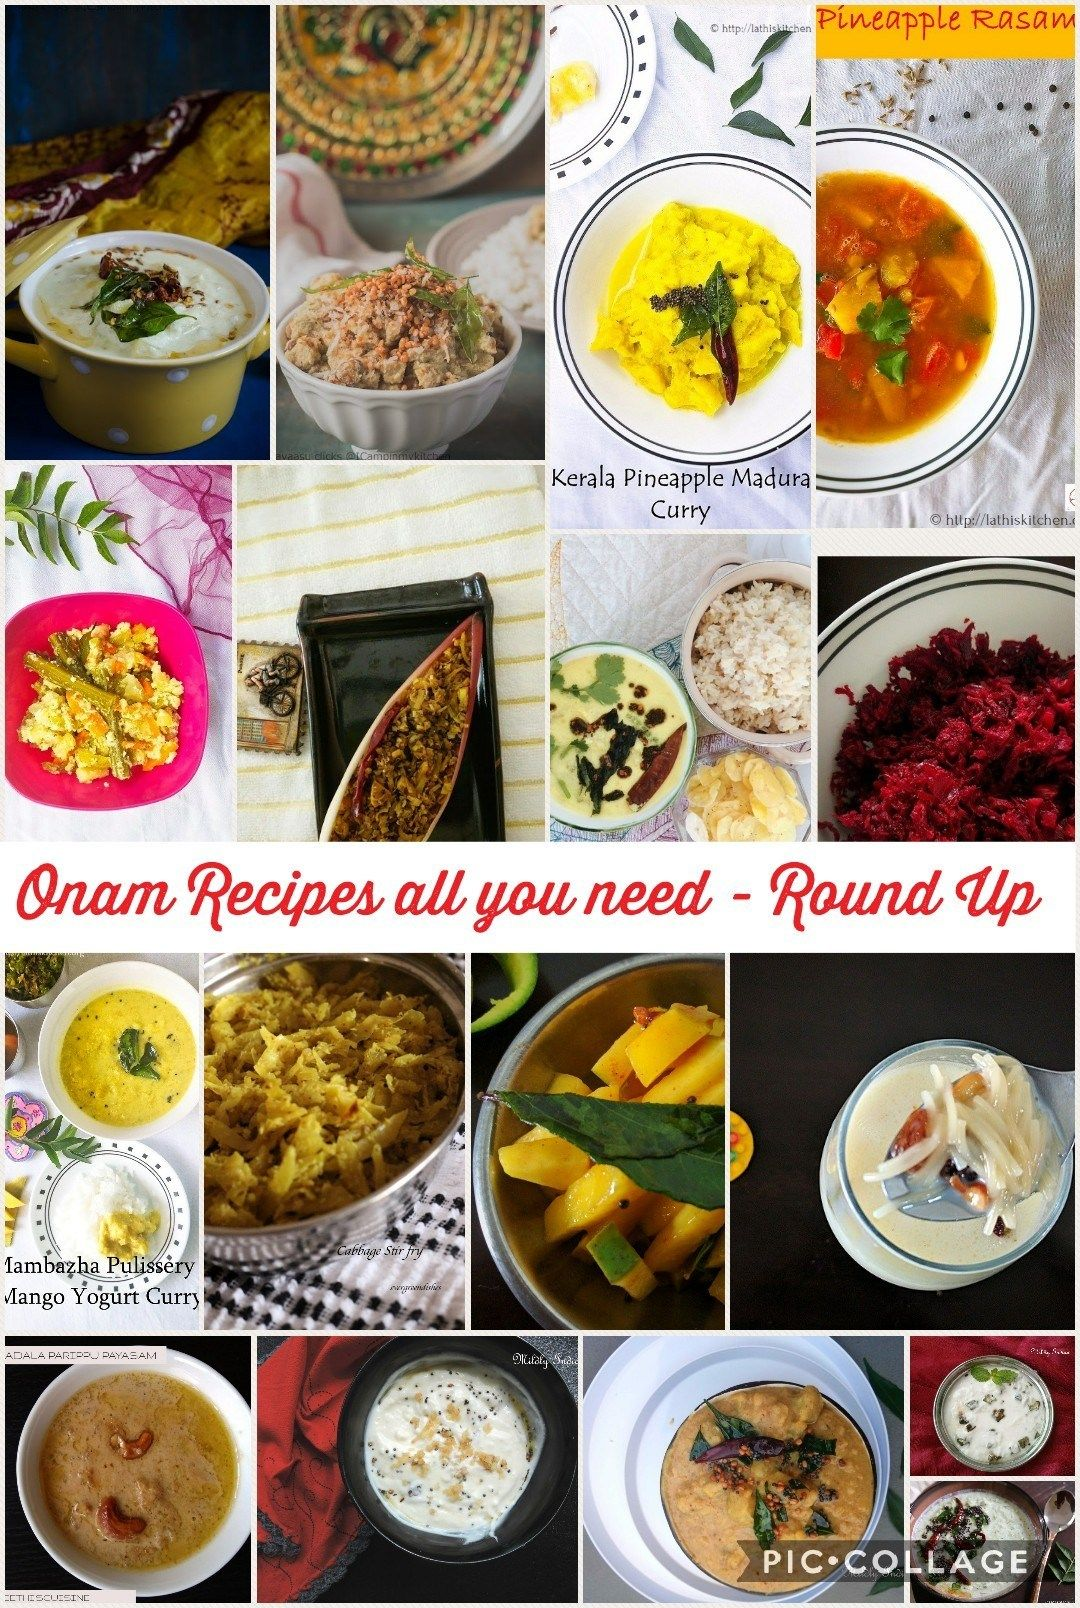 Collection of Onam recipes Round up Post (With images